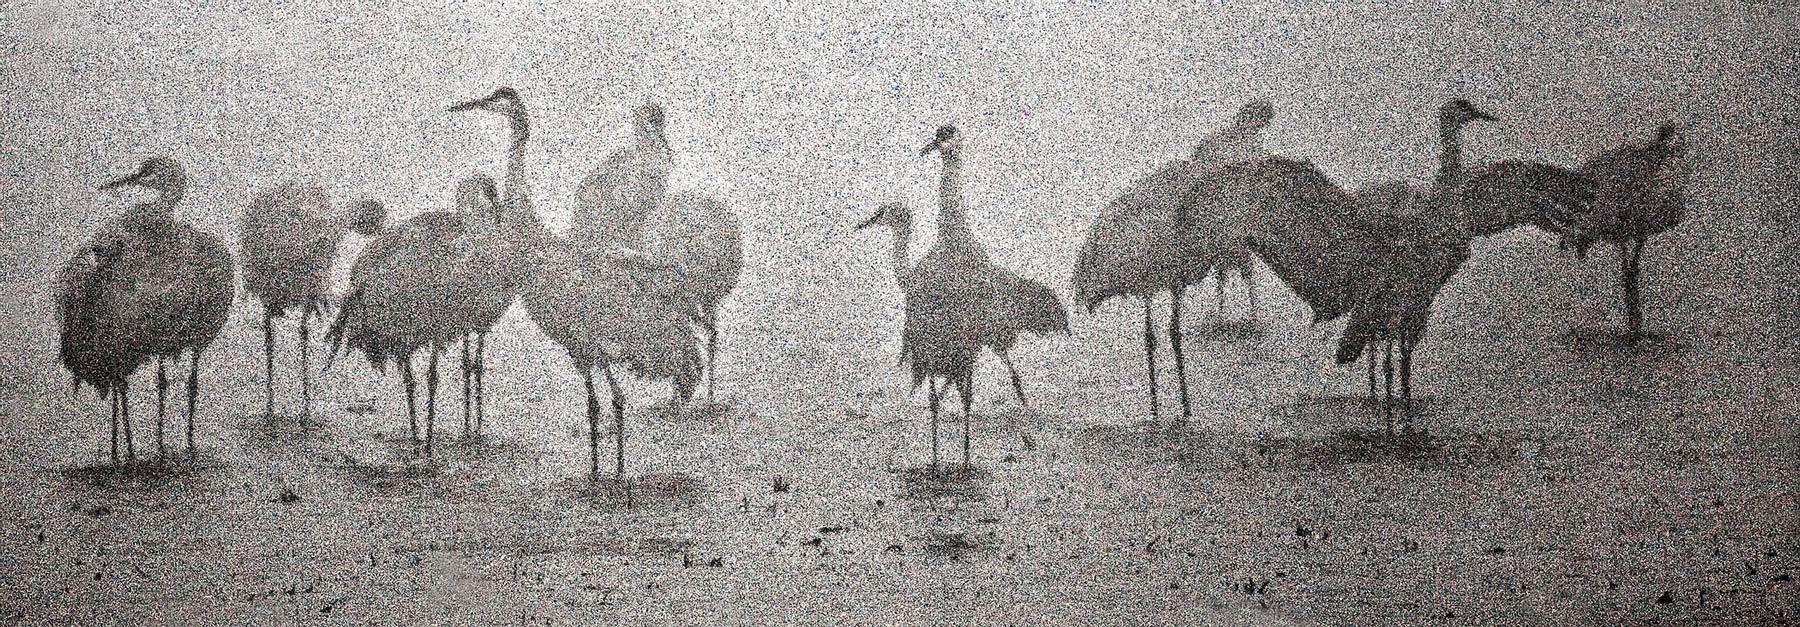 In the Mist II, Sandhill Cranes, Staten Island, California Delta